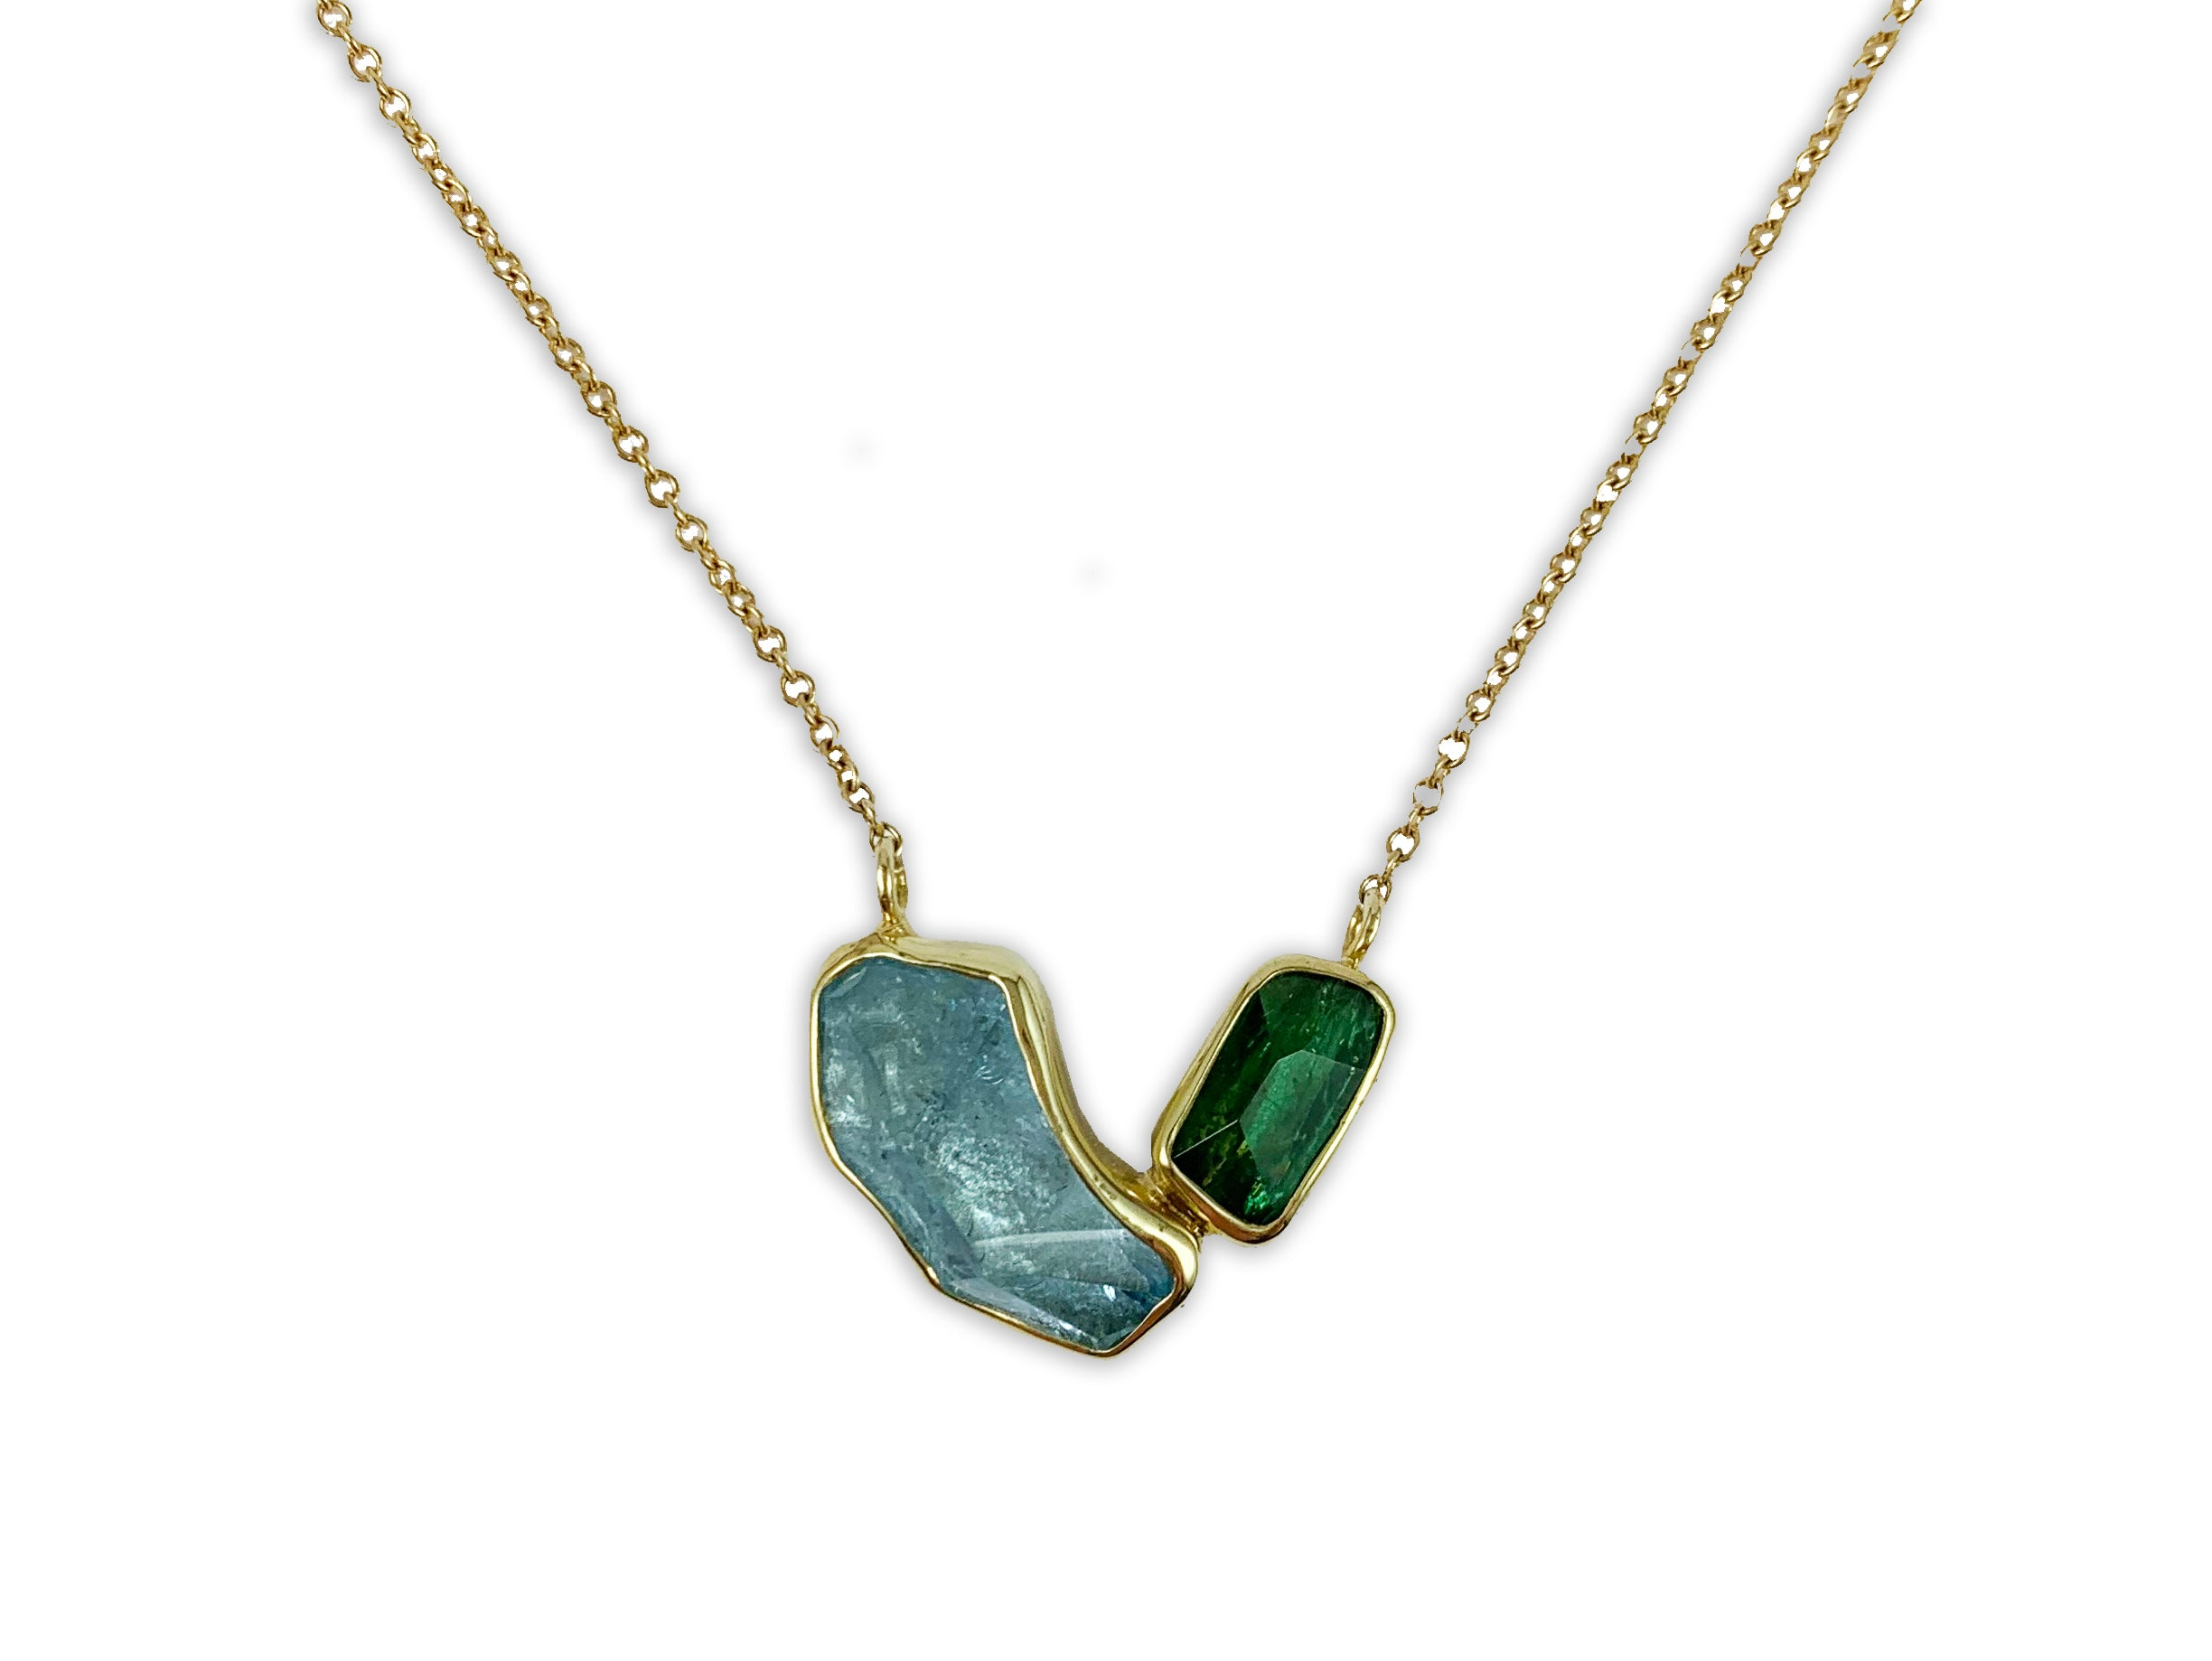 Aquamarine and Green Tourmaline Pendant Necklace